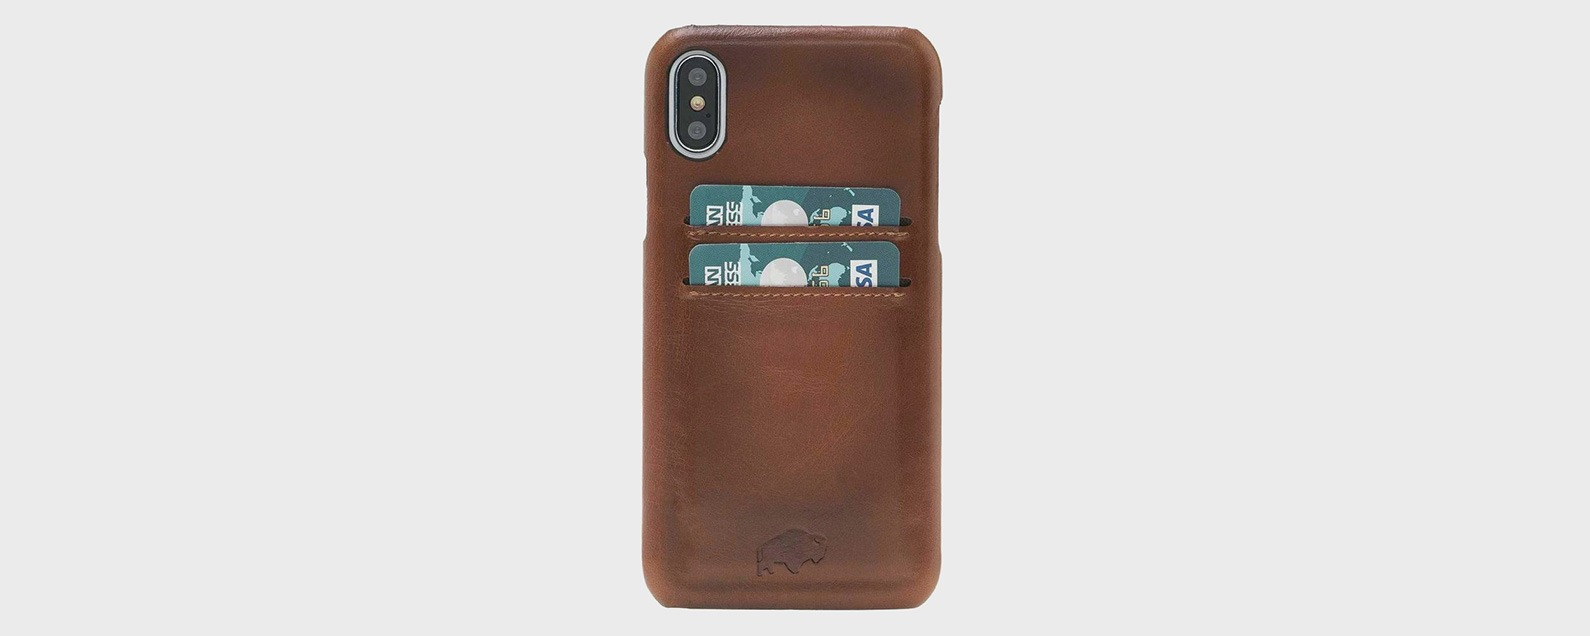 the latest 23a74 79085 Review: Leather iPhone X Cases in Wallet & Other Styles   iPhoneLife.com